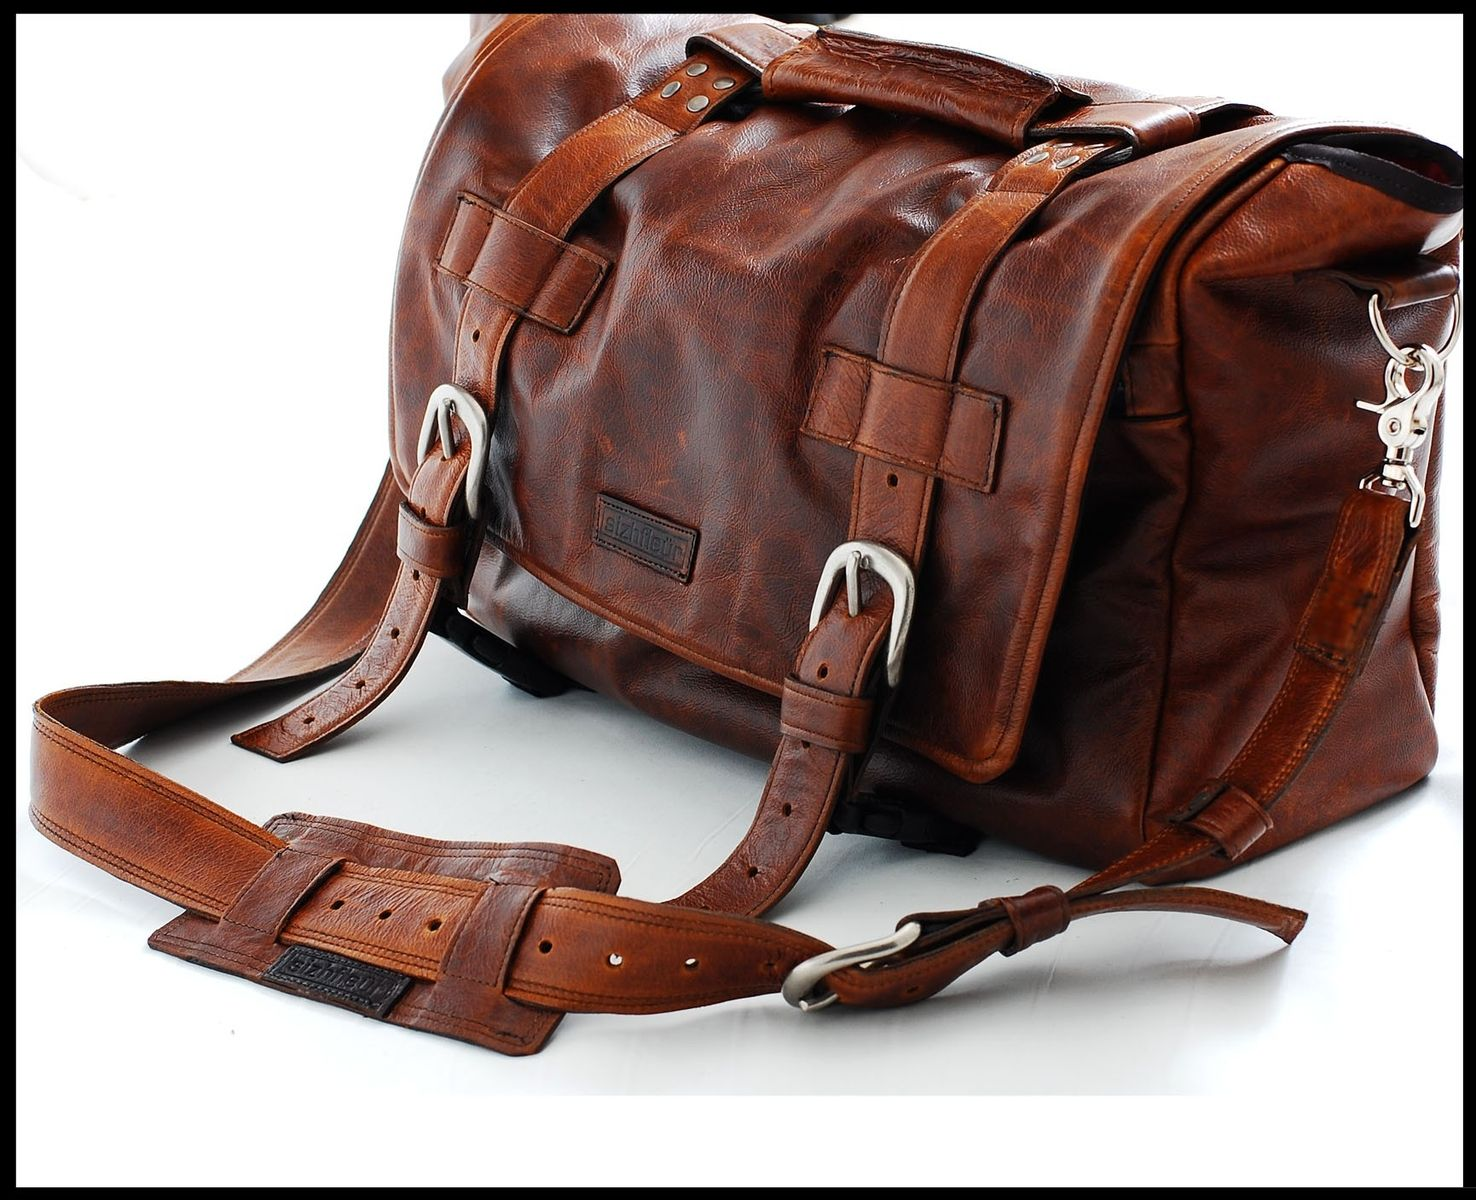 Custom Messenger Bags | Personalized Men's and Women's Leather ...